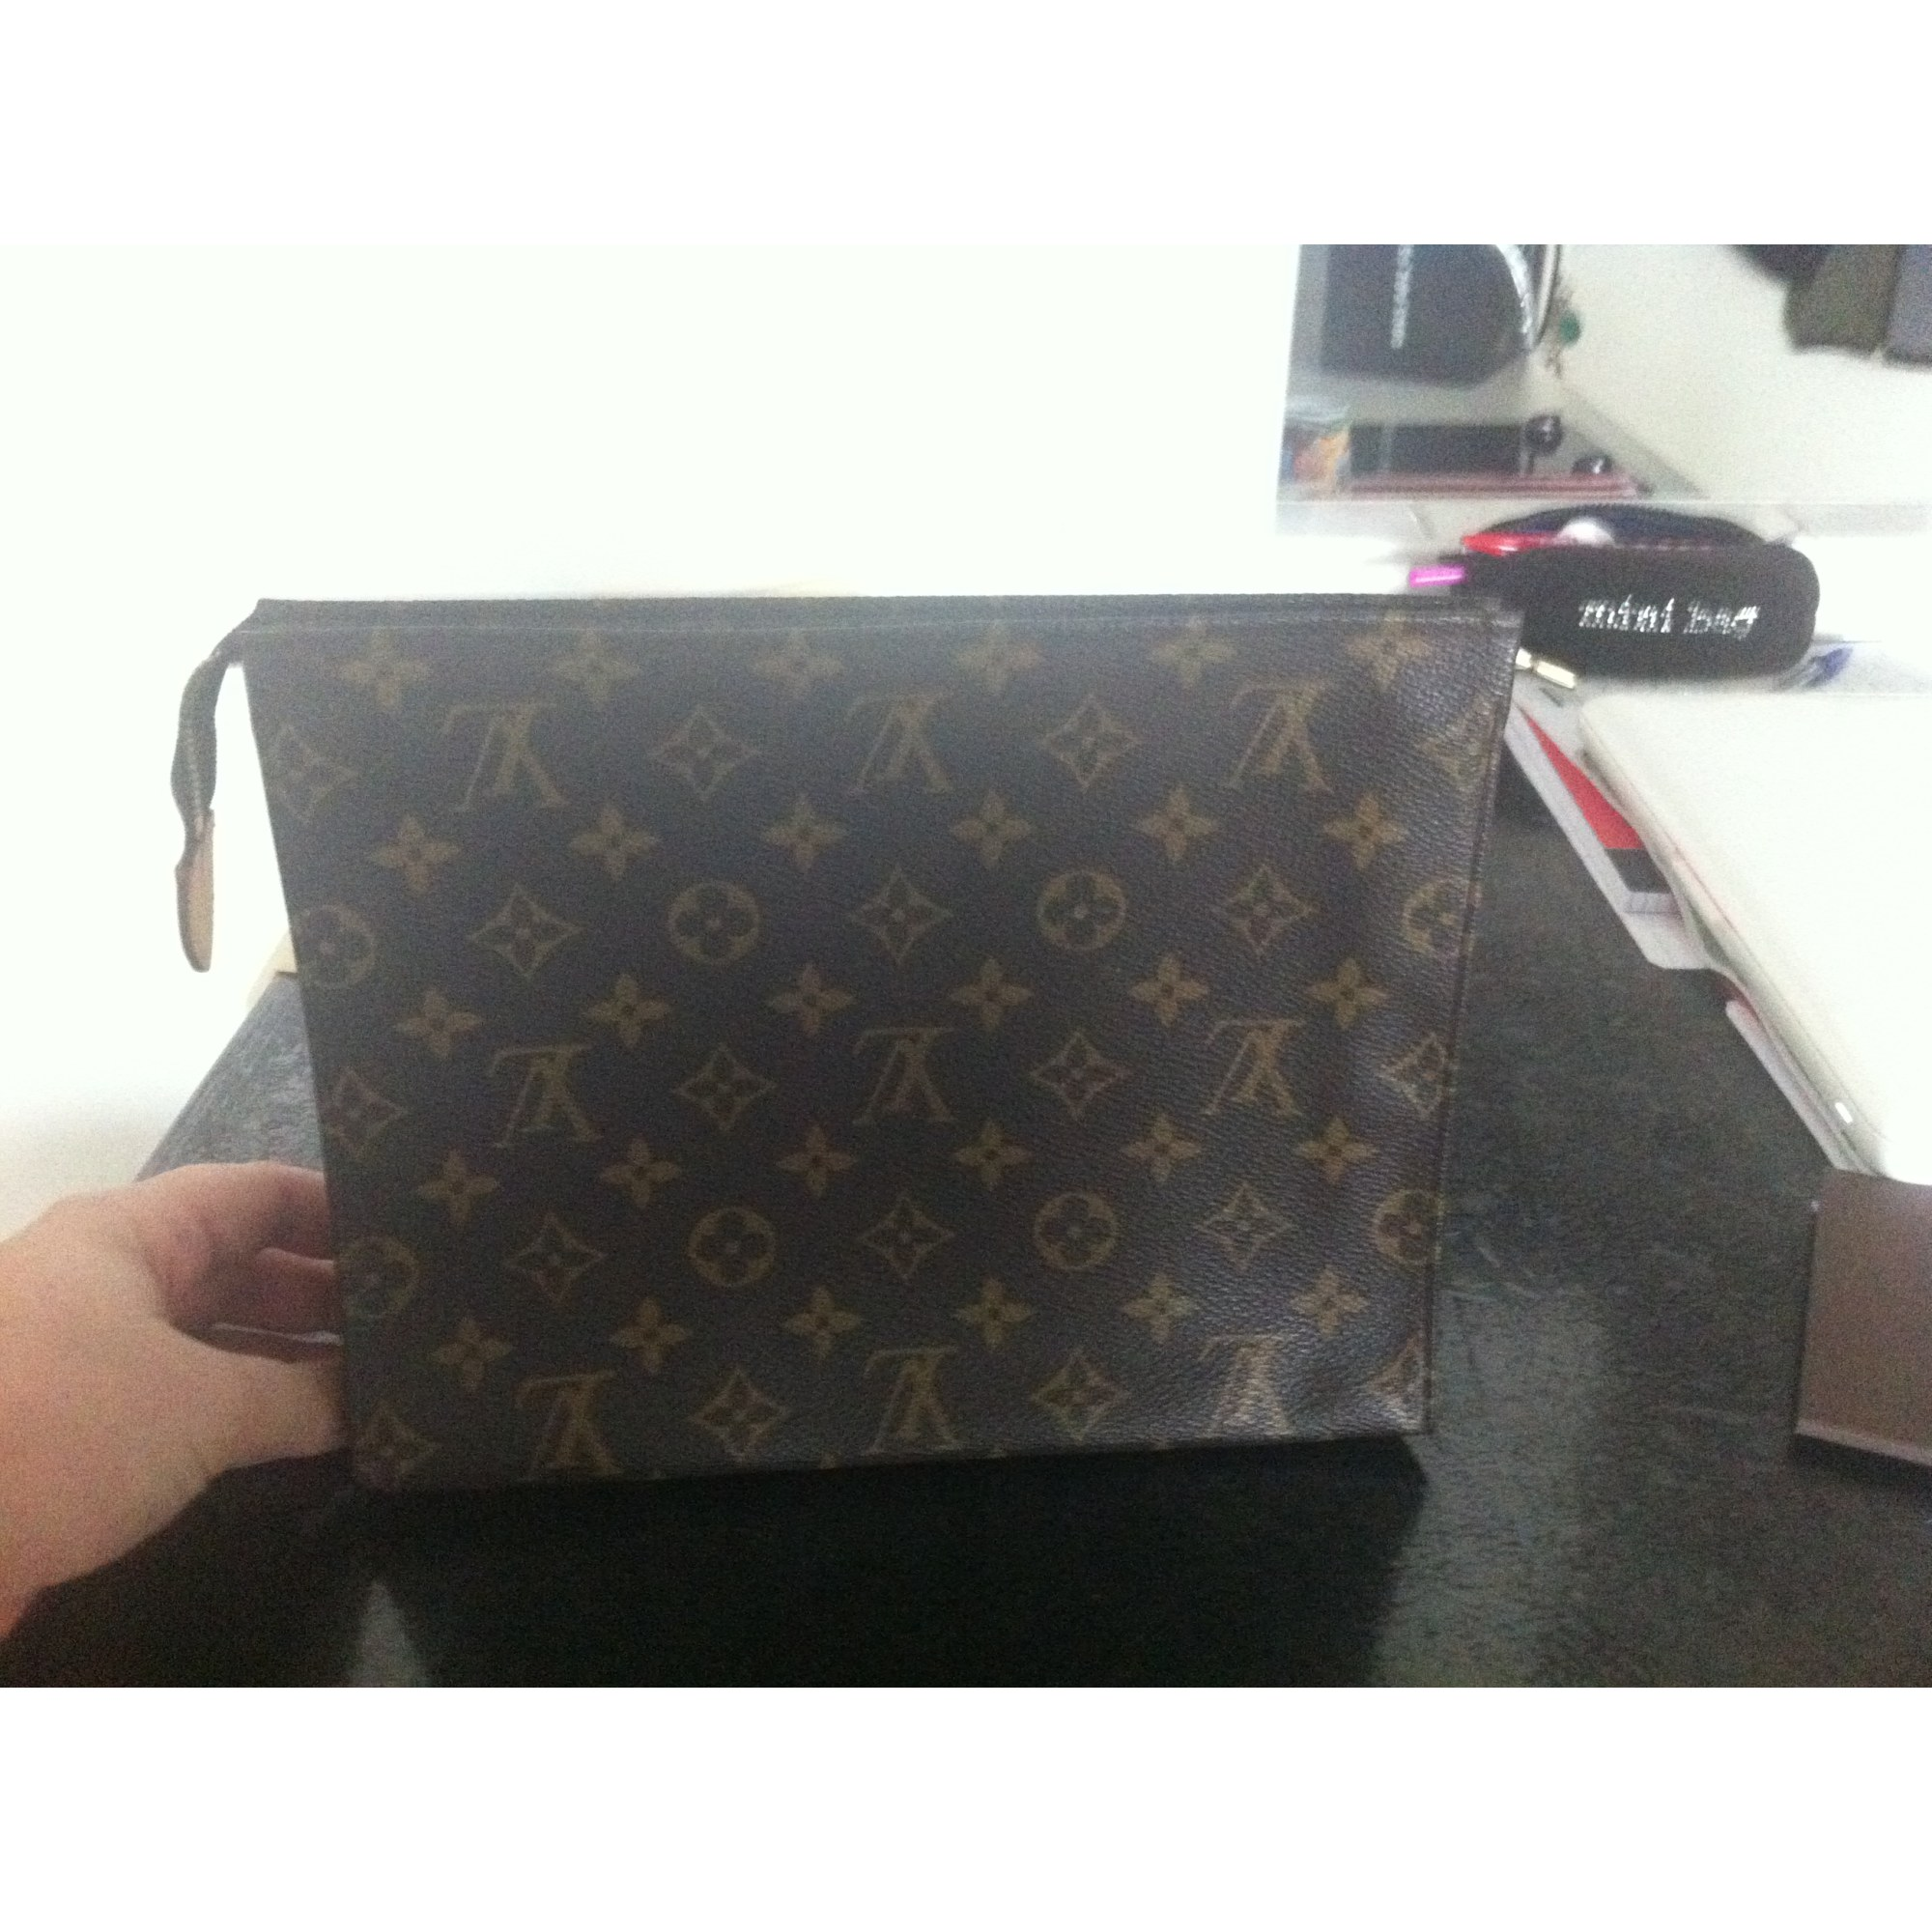 03373562f9 Pochette LOUIS VUITTON marrone vendu par Nessa1911 - 2498714